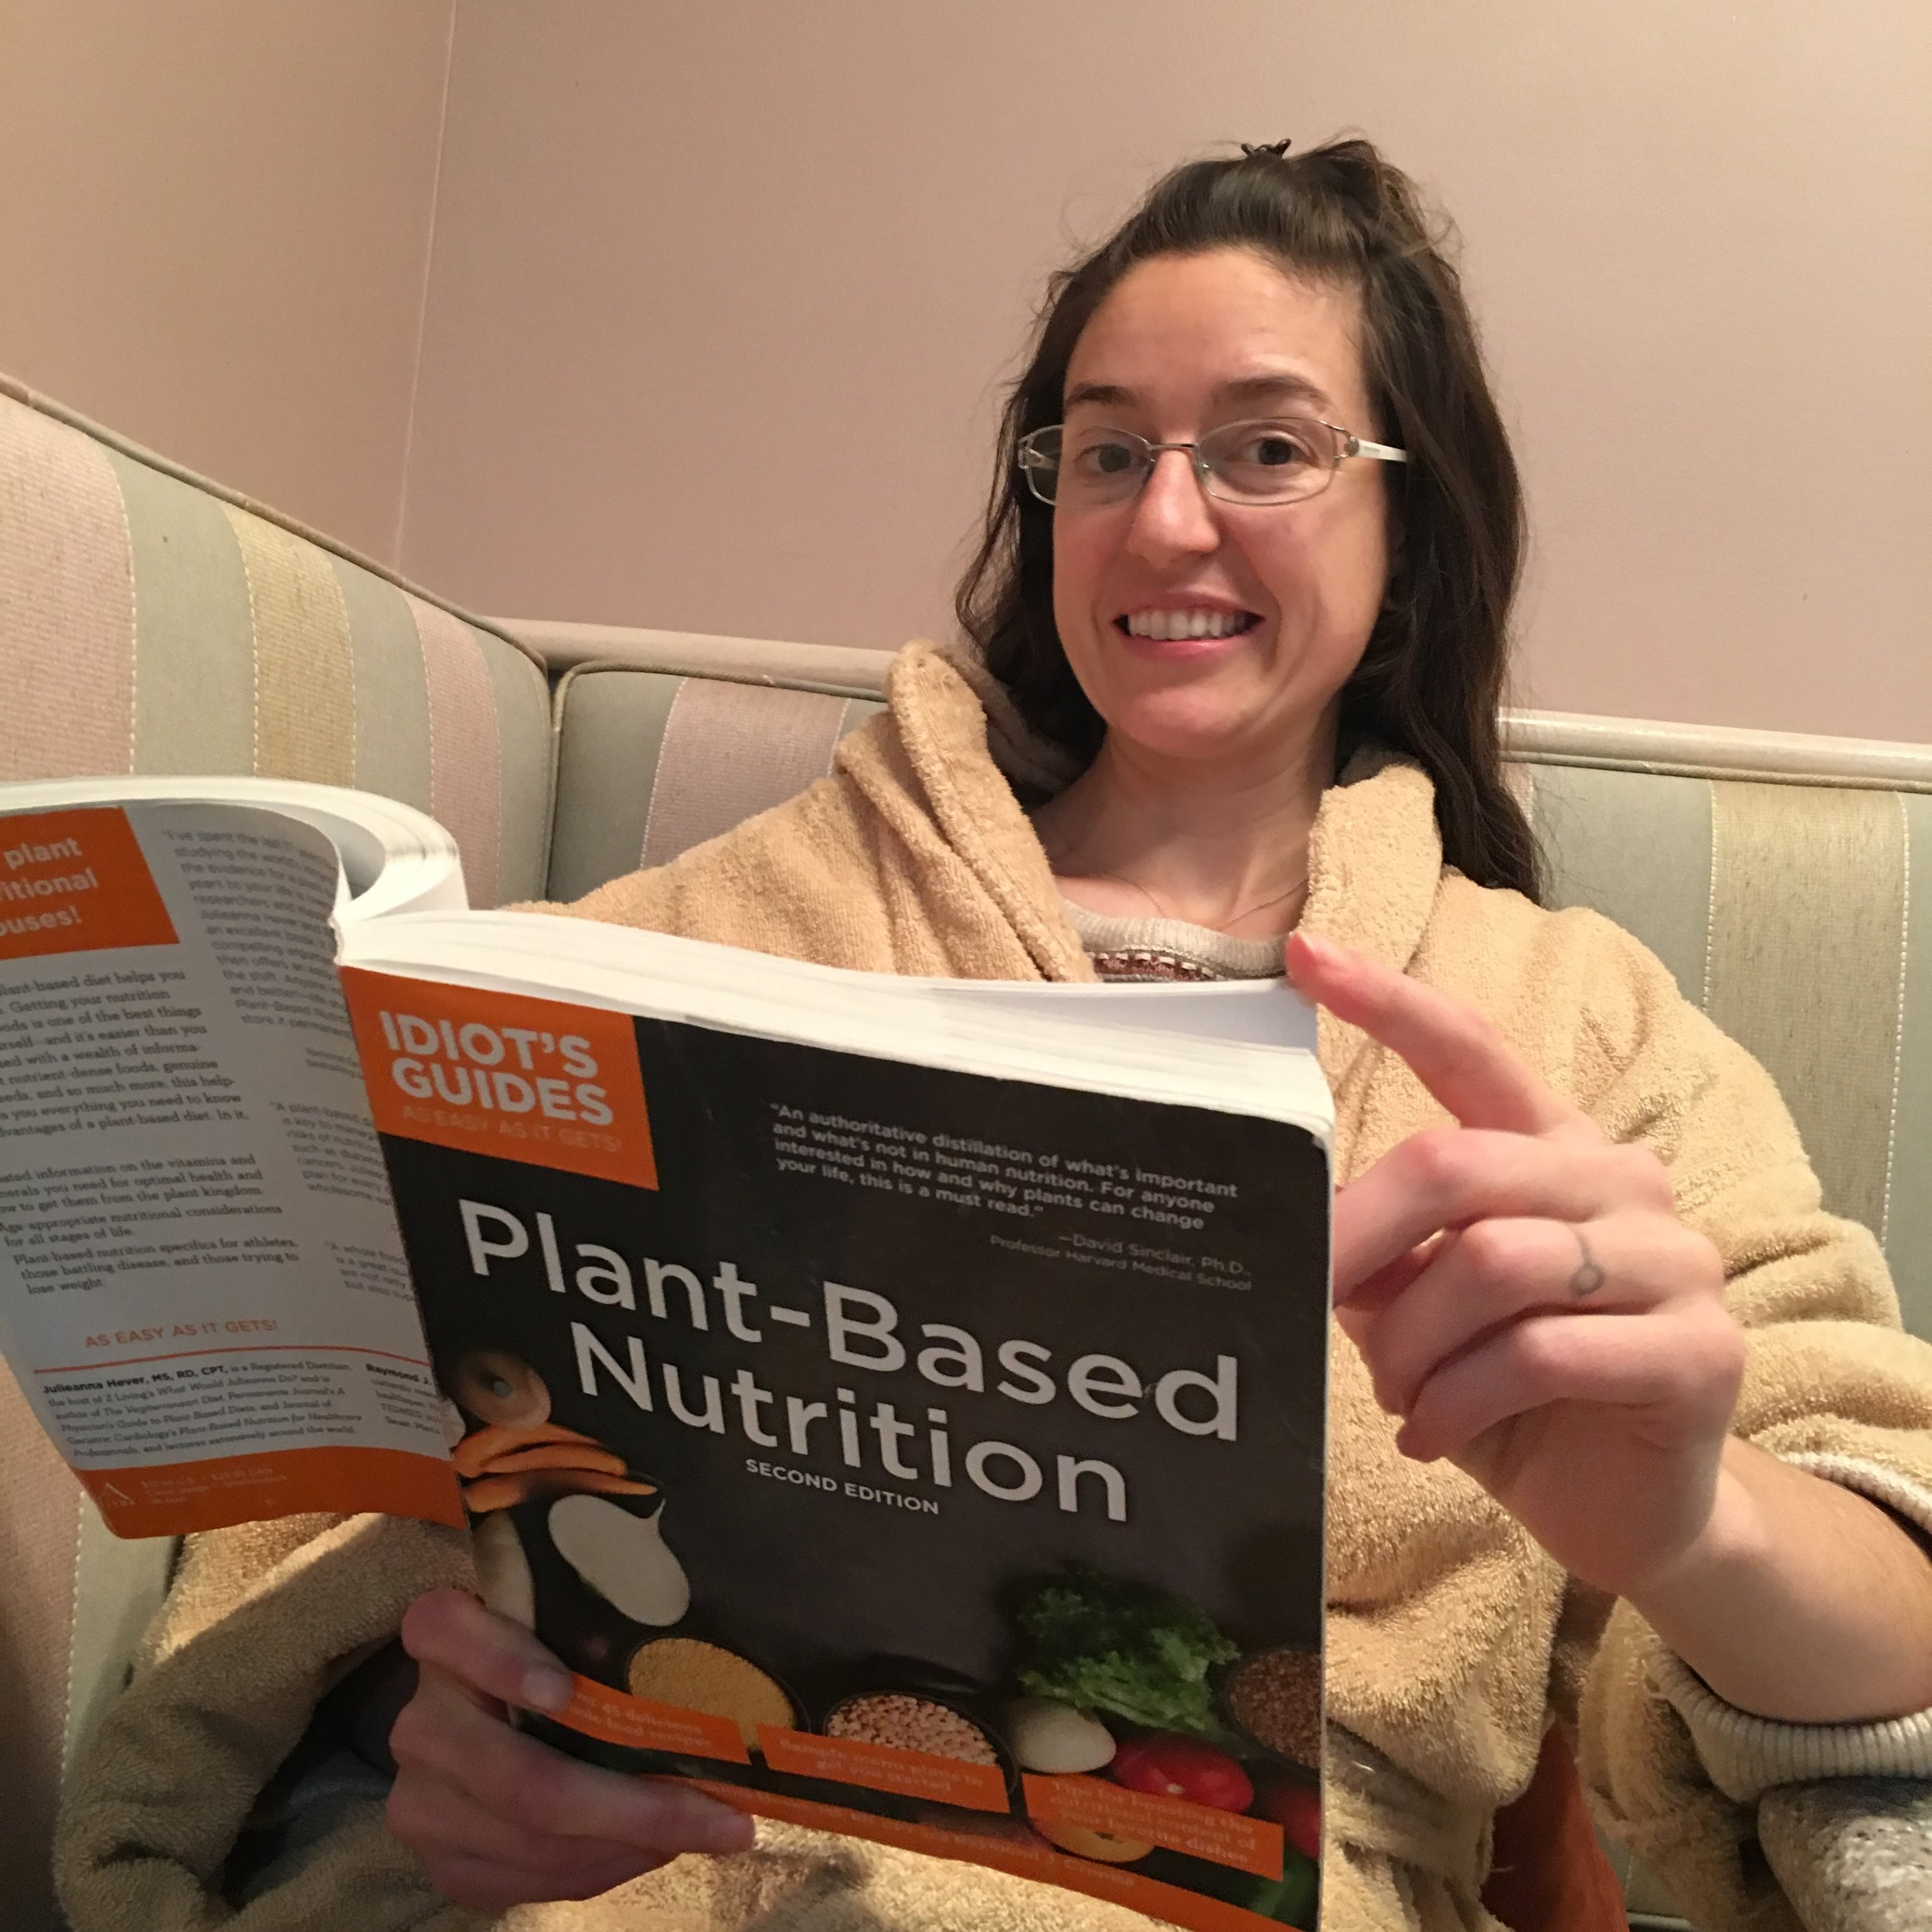 """Plant-Based Nutrition, Second Edition"" (2018) by Julieanna Hevers and Raymond Cronise"